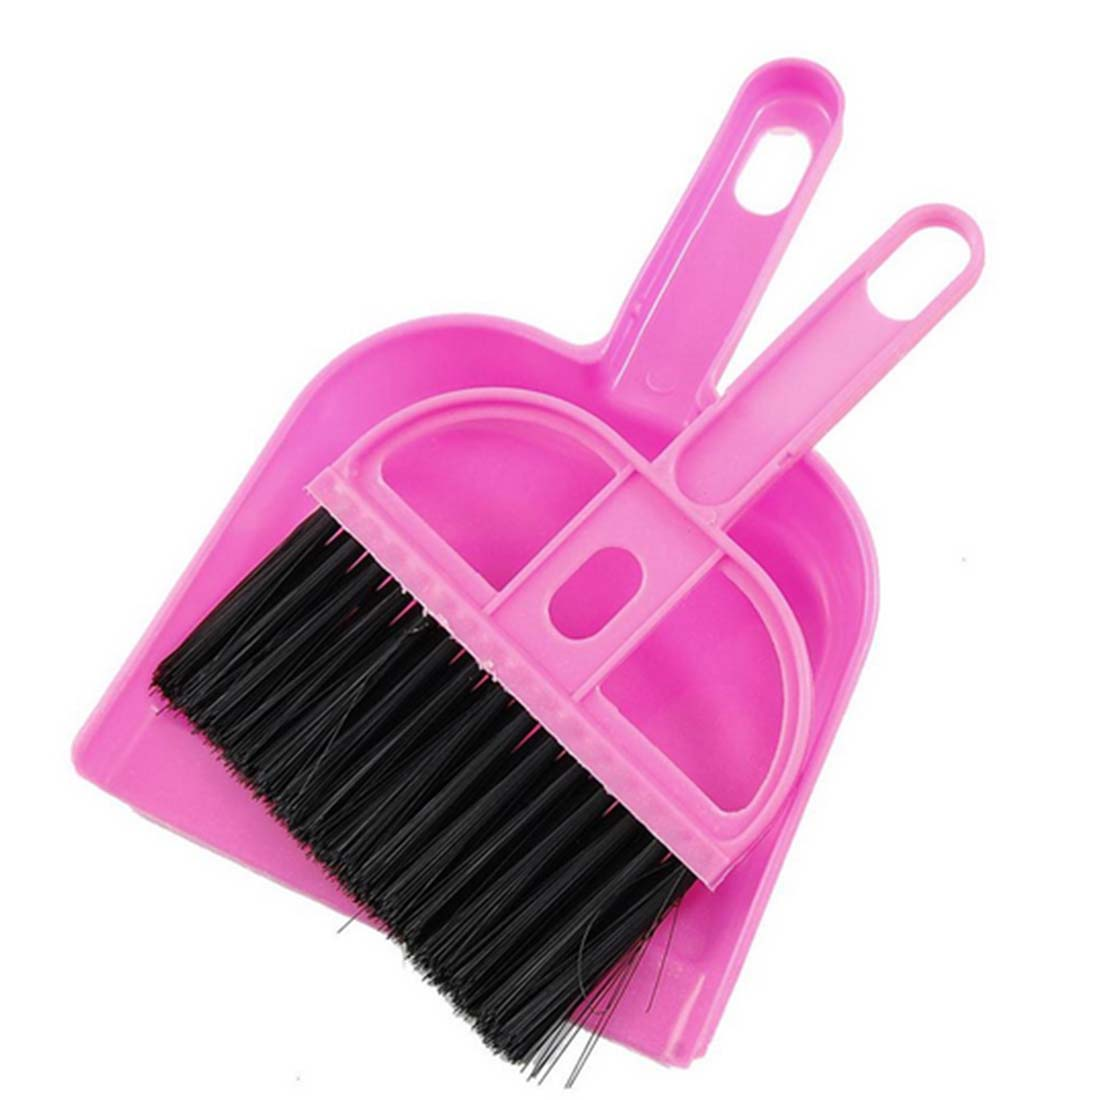 "New 7.5cm/2.95"" Office Home Car Cleaning Mini Whisk Broom Dustpan Set Random Color(China (Mainland))"